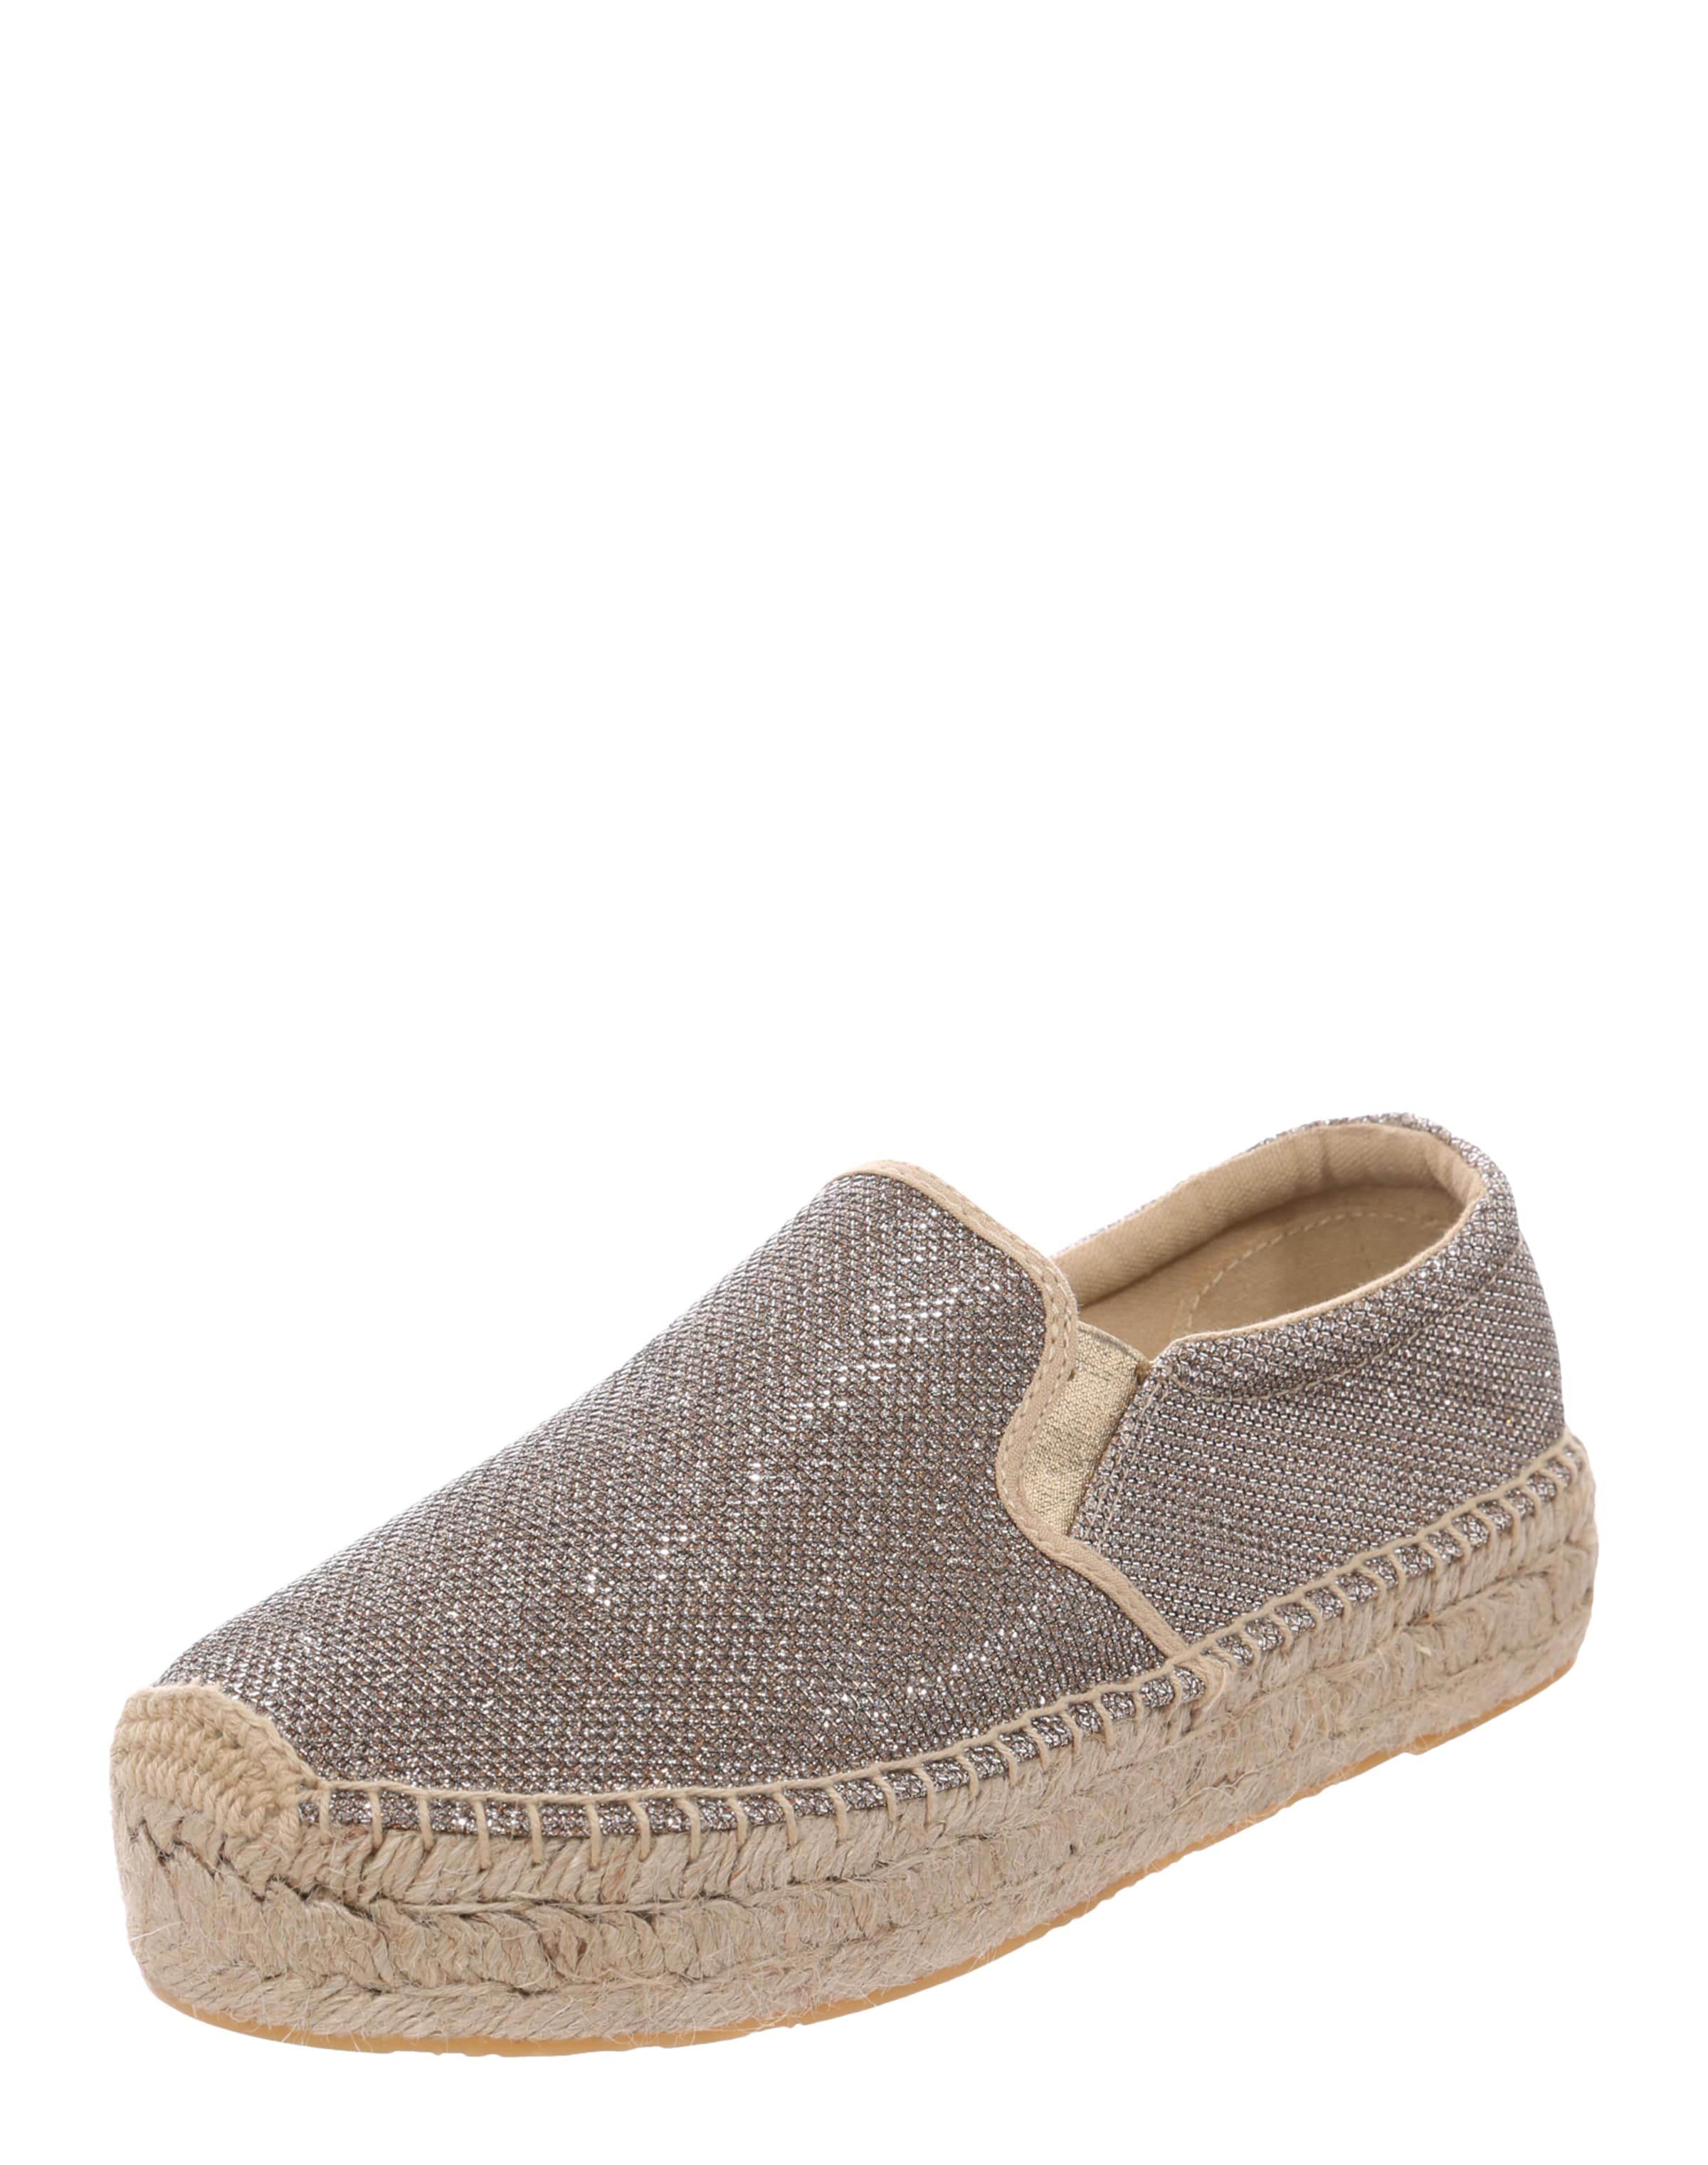 Replay Replay Gold Espadrilles In In Gold Espadrilles In Replay 'lawton' Espadrilles 'lawton' 'lawton' OknPw80